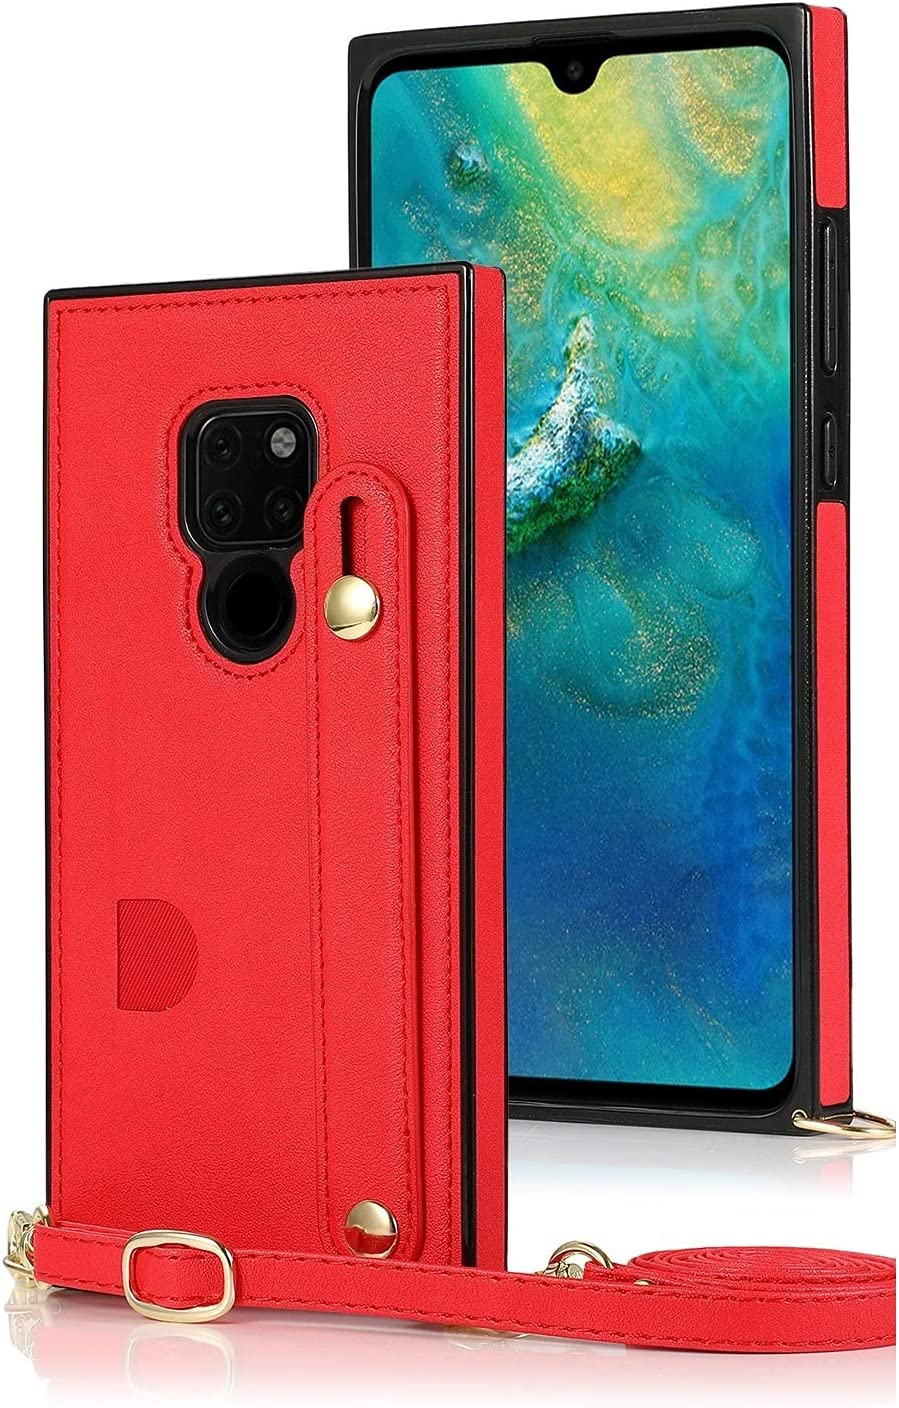 SLDiann Case for Huawei Mate 20, Leather Case with Credit Card Slot Non-Slip Buckle Holder/Crossbody Long Lanyard, Shockproof Leather TPU Case Cover for Huawei Mate 20 (Color : Red)